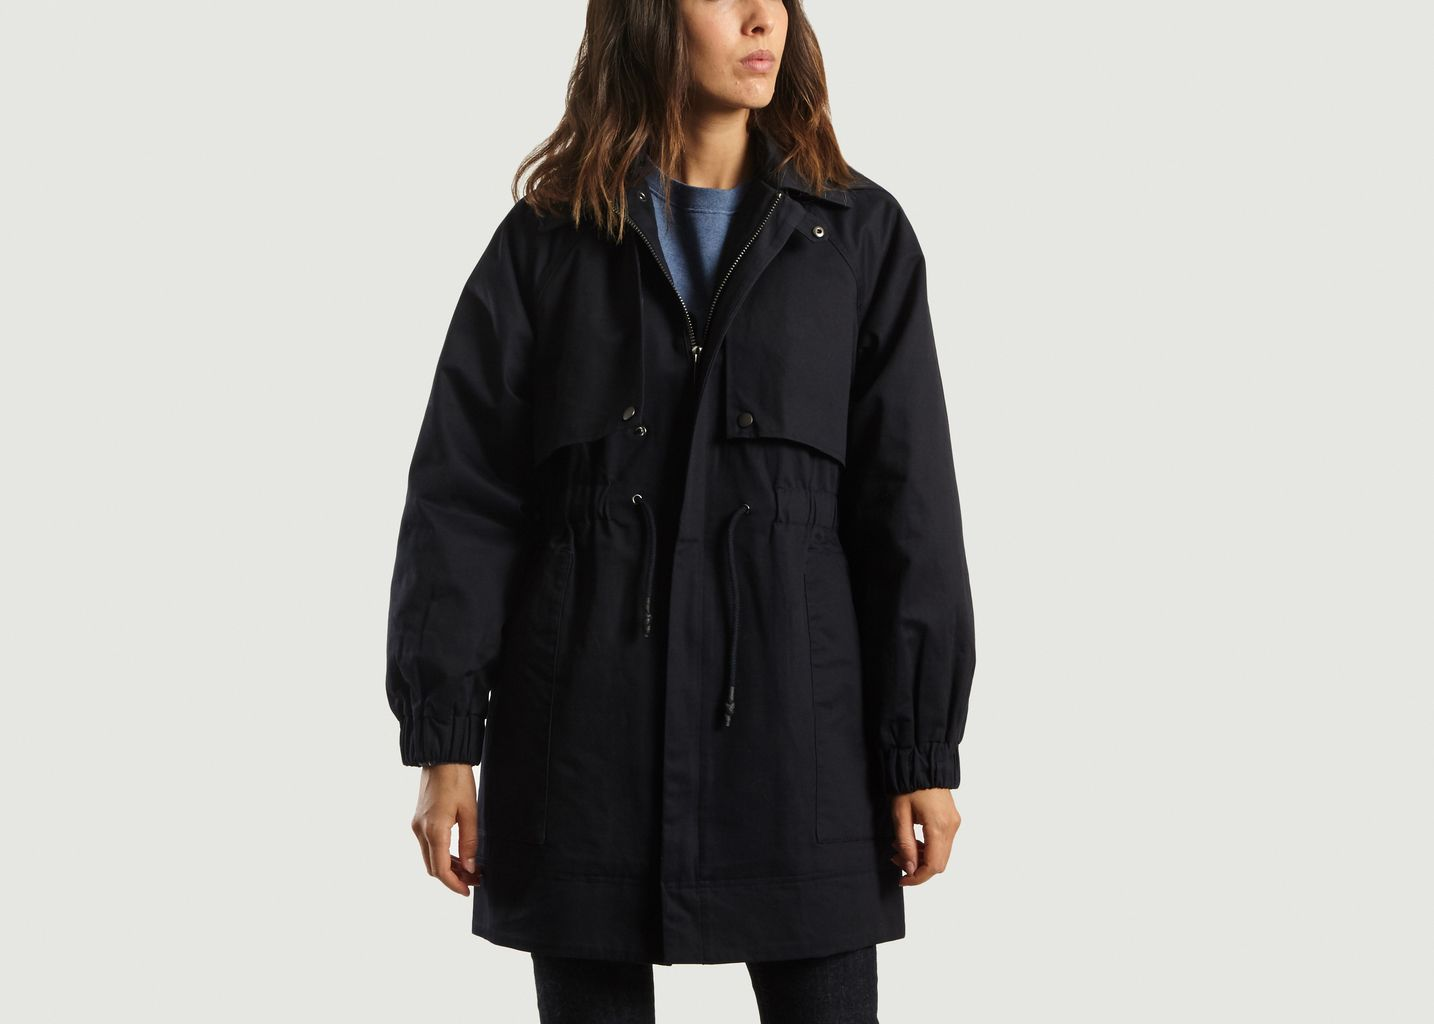 d75b5999e2f5 Everest Parka Navy Blue Soeur